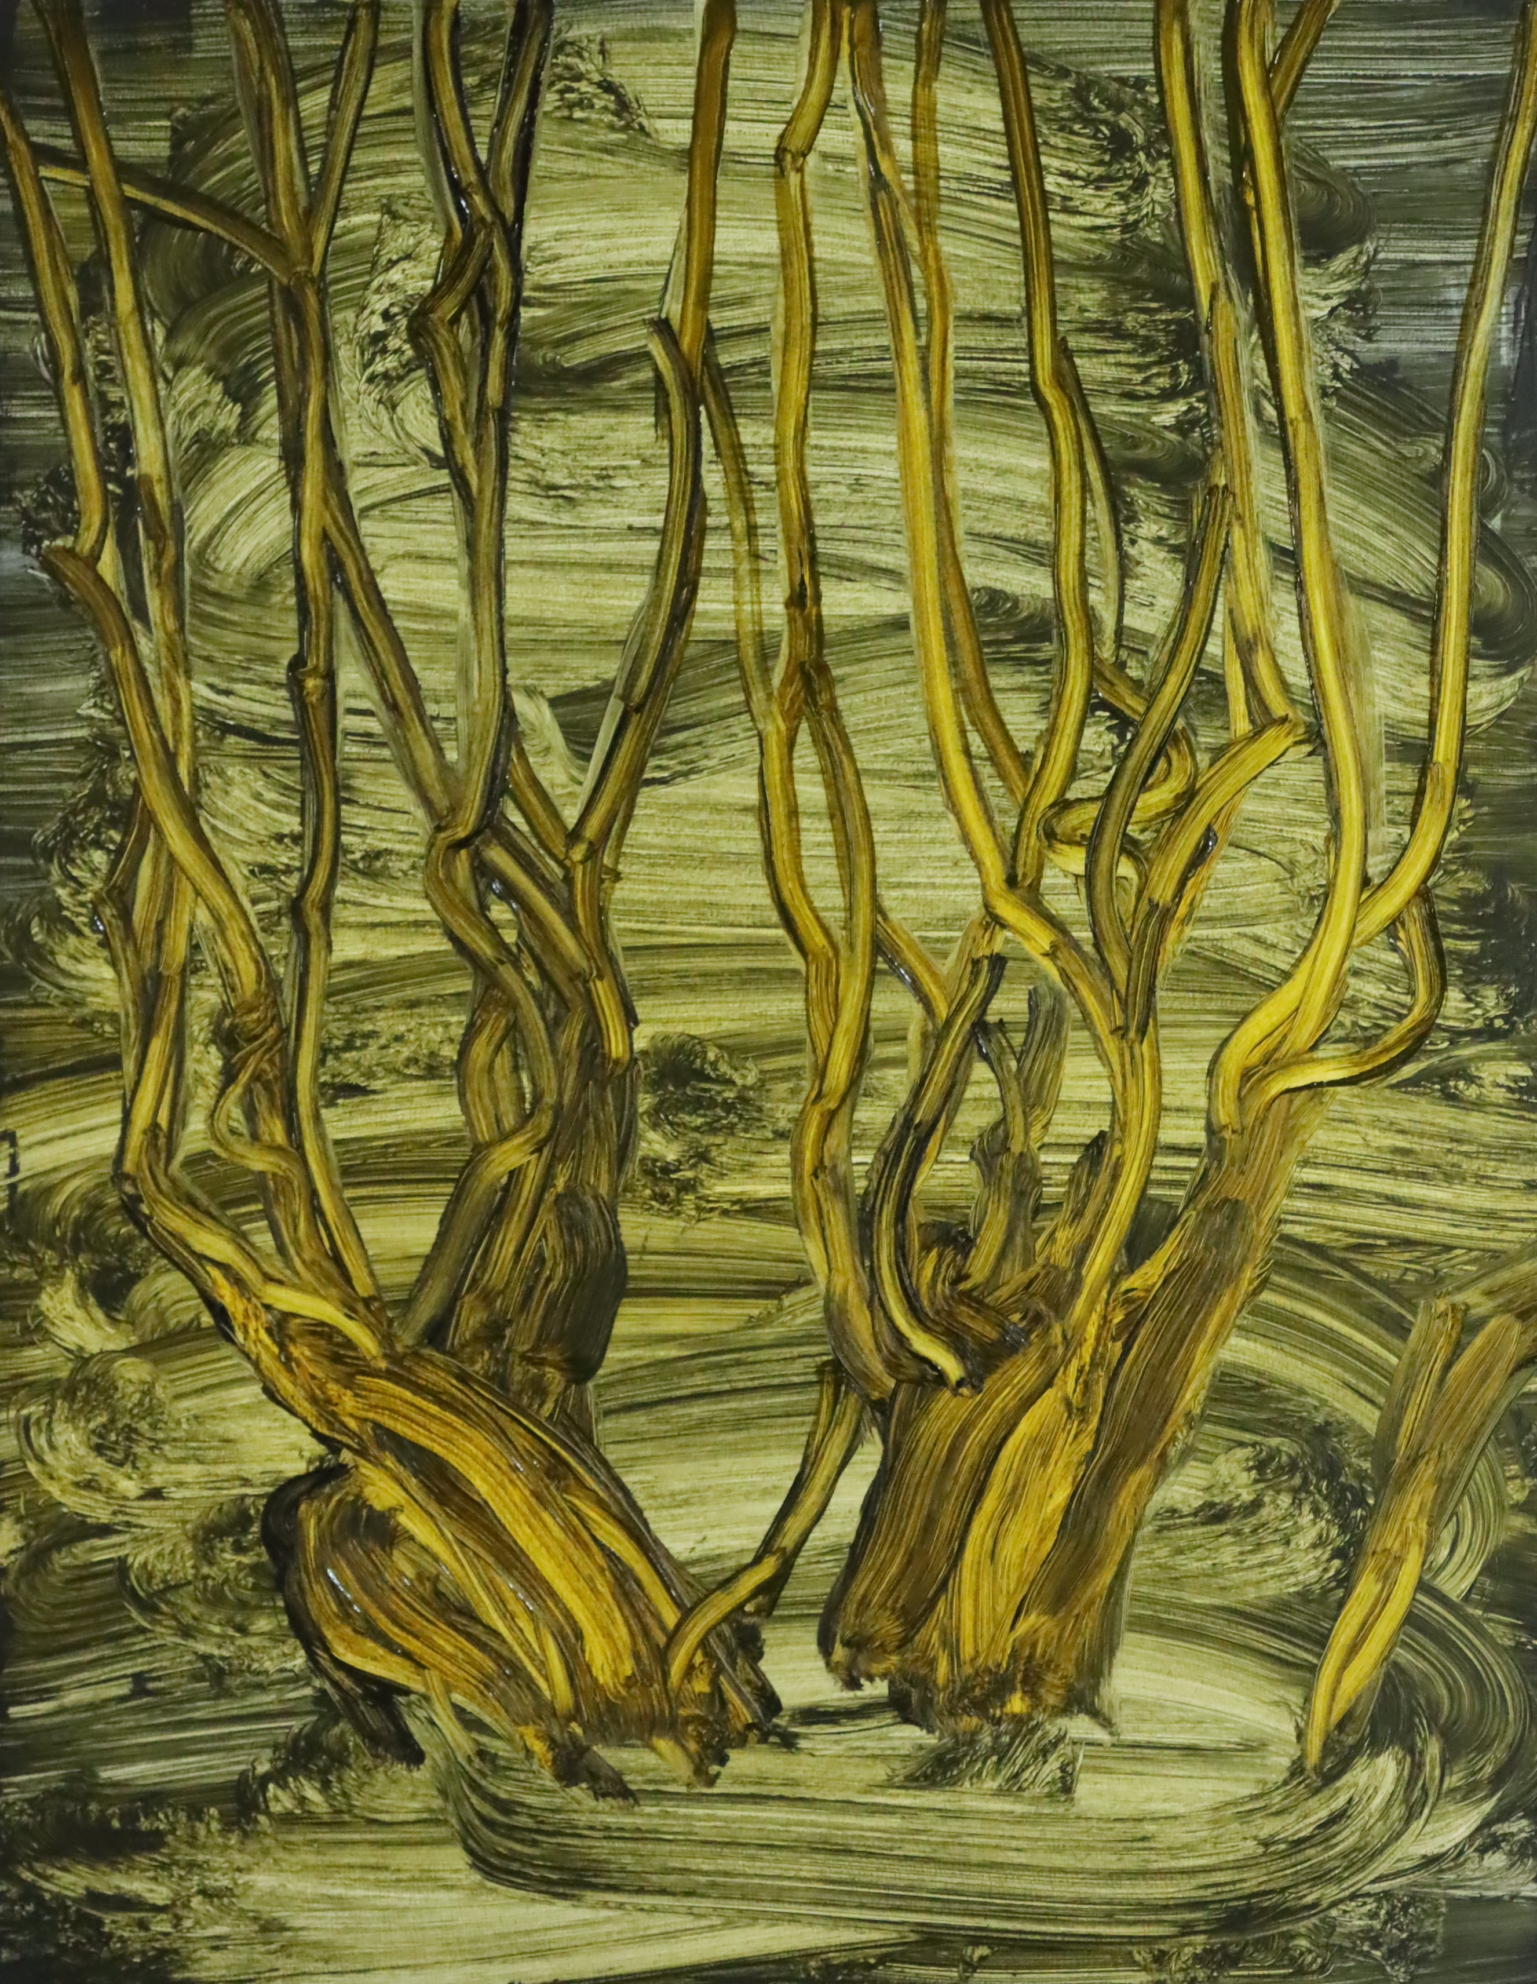 Fairly abstract painting of a group of bare trees in yellow and ochre tones, painted with fluid strokes.